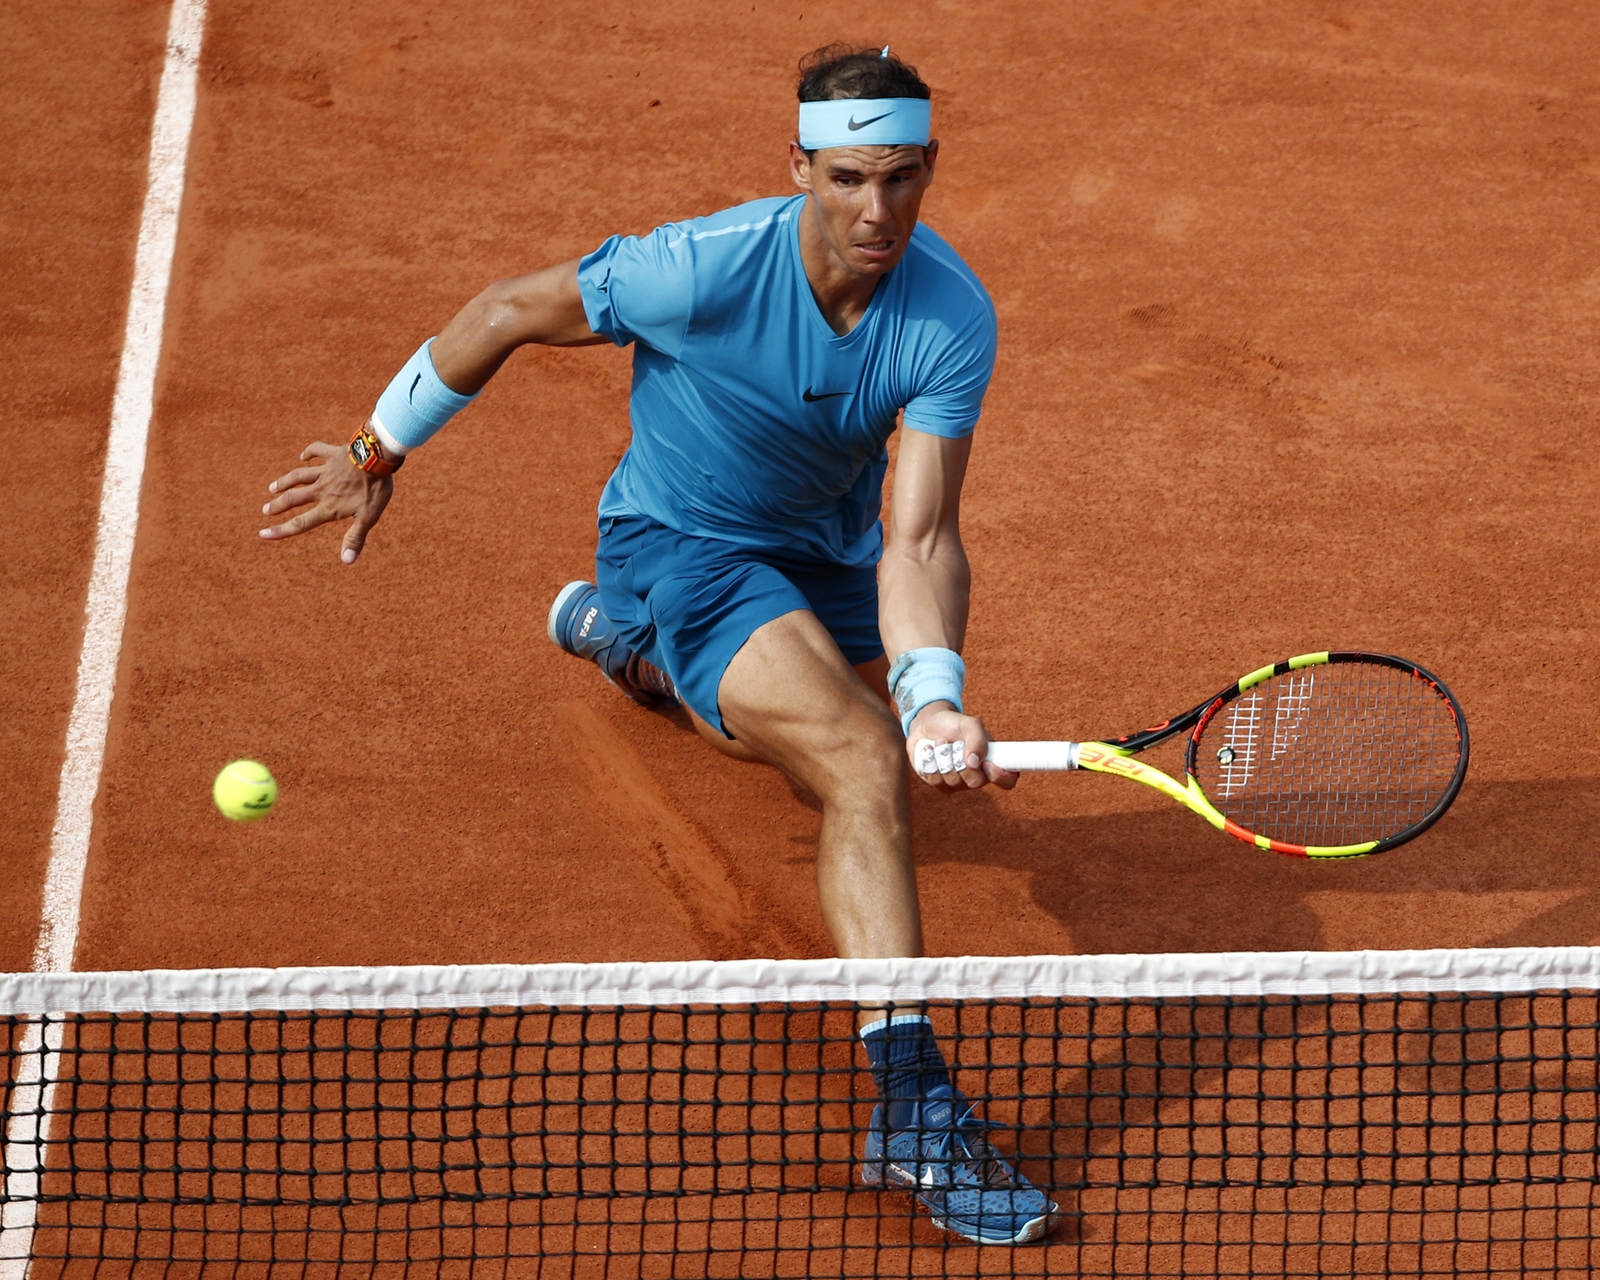 France-Tennis-French-Open-2617-5249-4575-1528704107